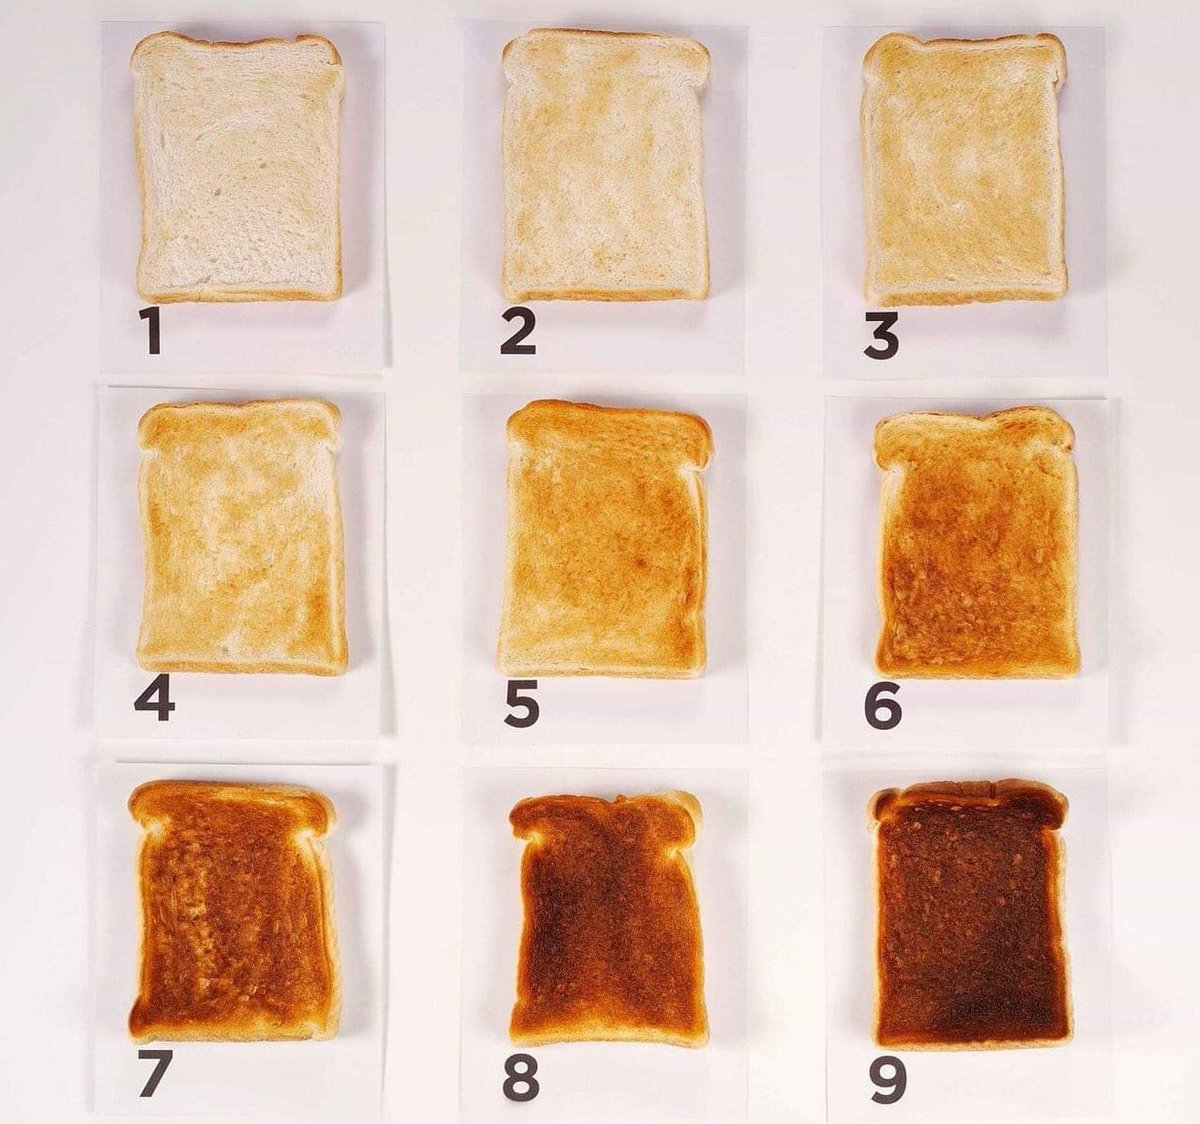 Best way to have your toast?  I'm going with 4 or 5 ????????♀️  #RandomBreadRelatedTweet https://t.co/JsHIqNVVko